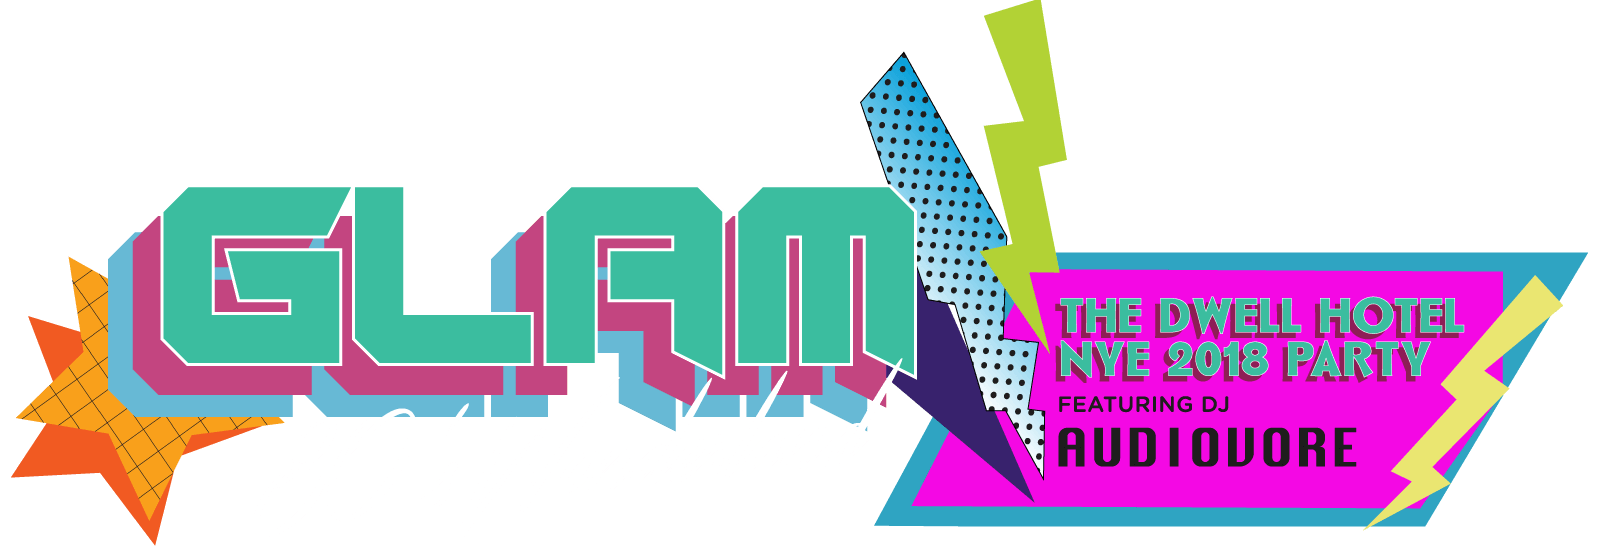 Announcing the Glam 80s Wonderland–New Years Eve Party 2018 at The Dwell Hotel featuring dj Audiovore